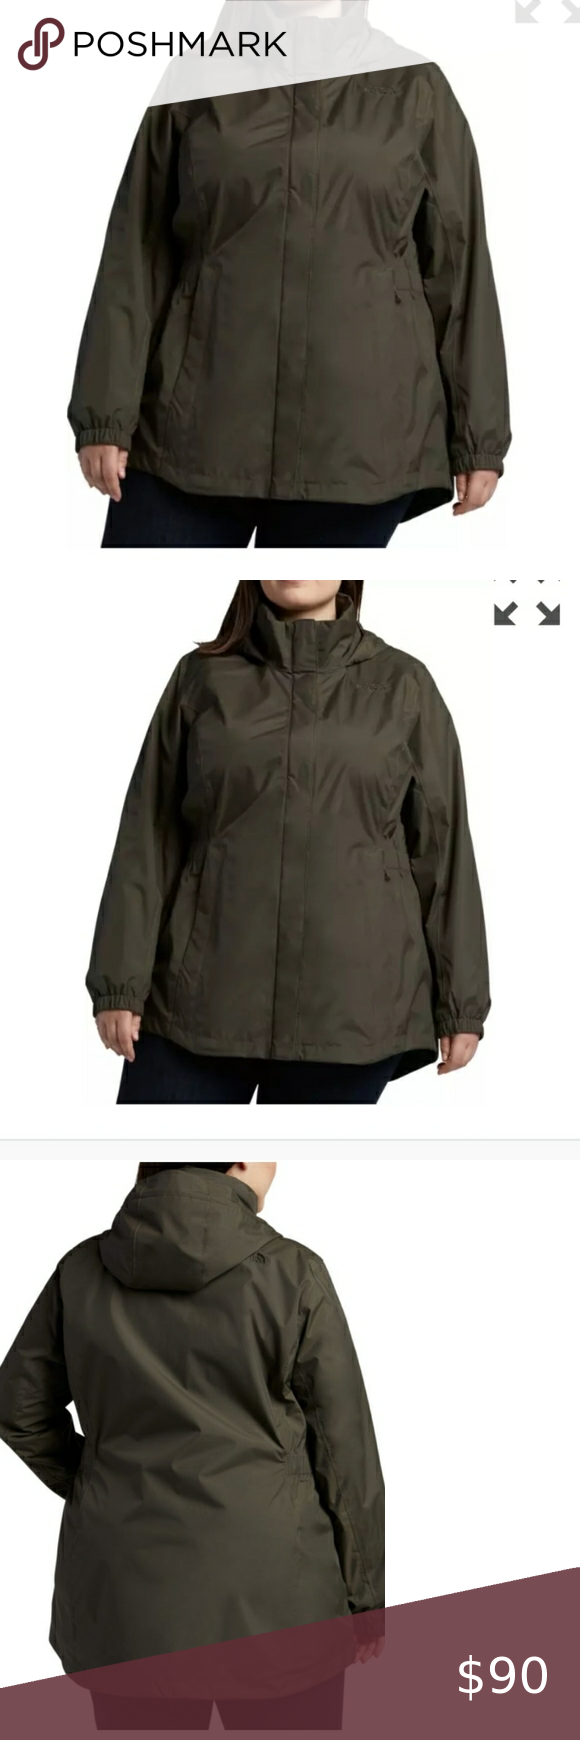 The North Face Plus Size Jacket Nwt Size 3x Color New Taupe Green Khaki Most Accurately Show White North Face Jacket Clothes Design Pink North Face Jacket [ 1740 x 580 Pixel ]